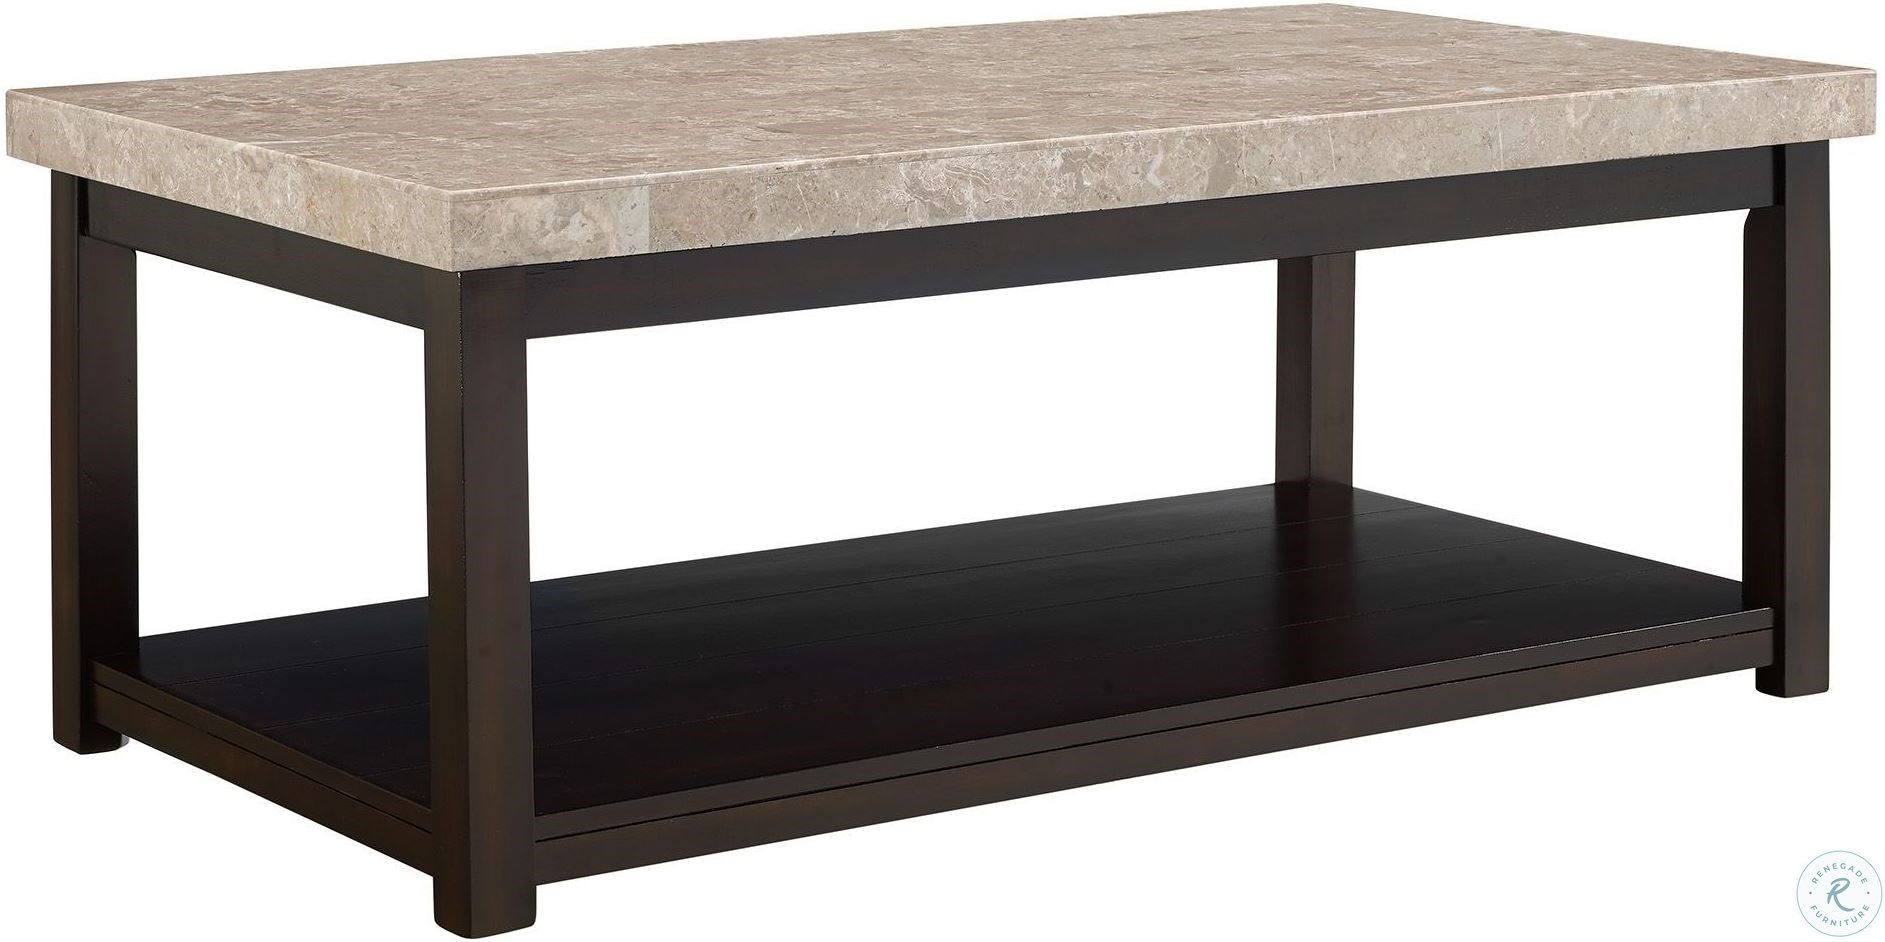 Caleb Espresso Coffee Table With Marble Top From Elements